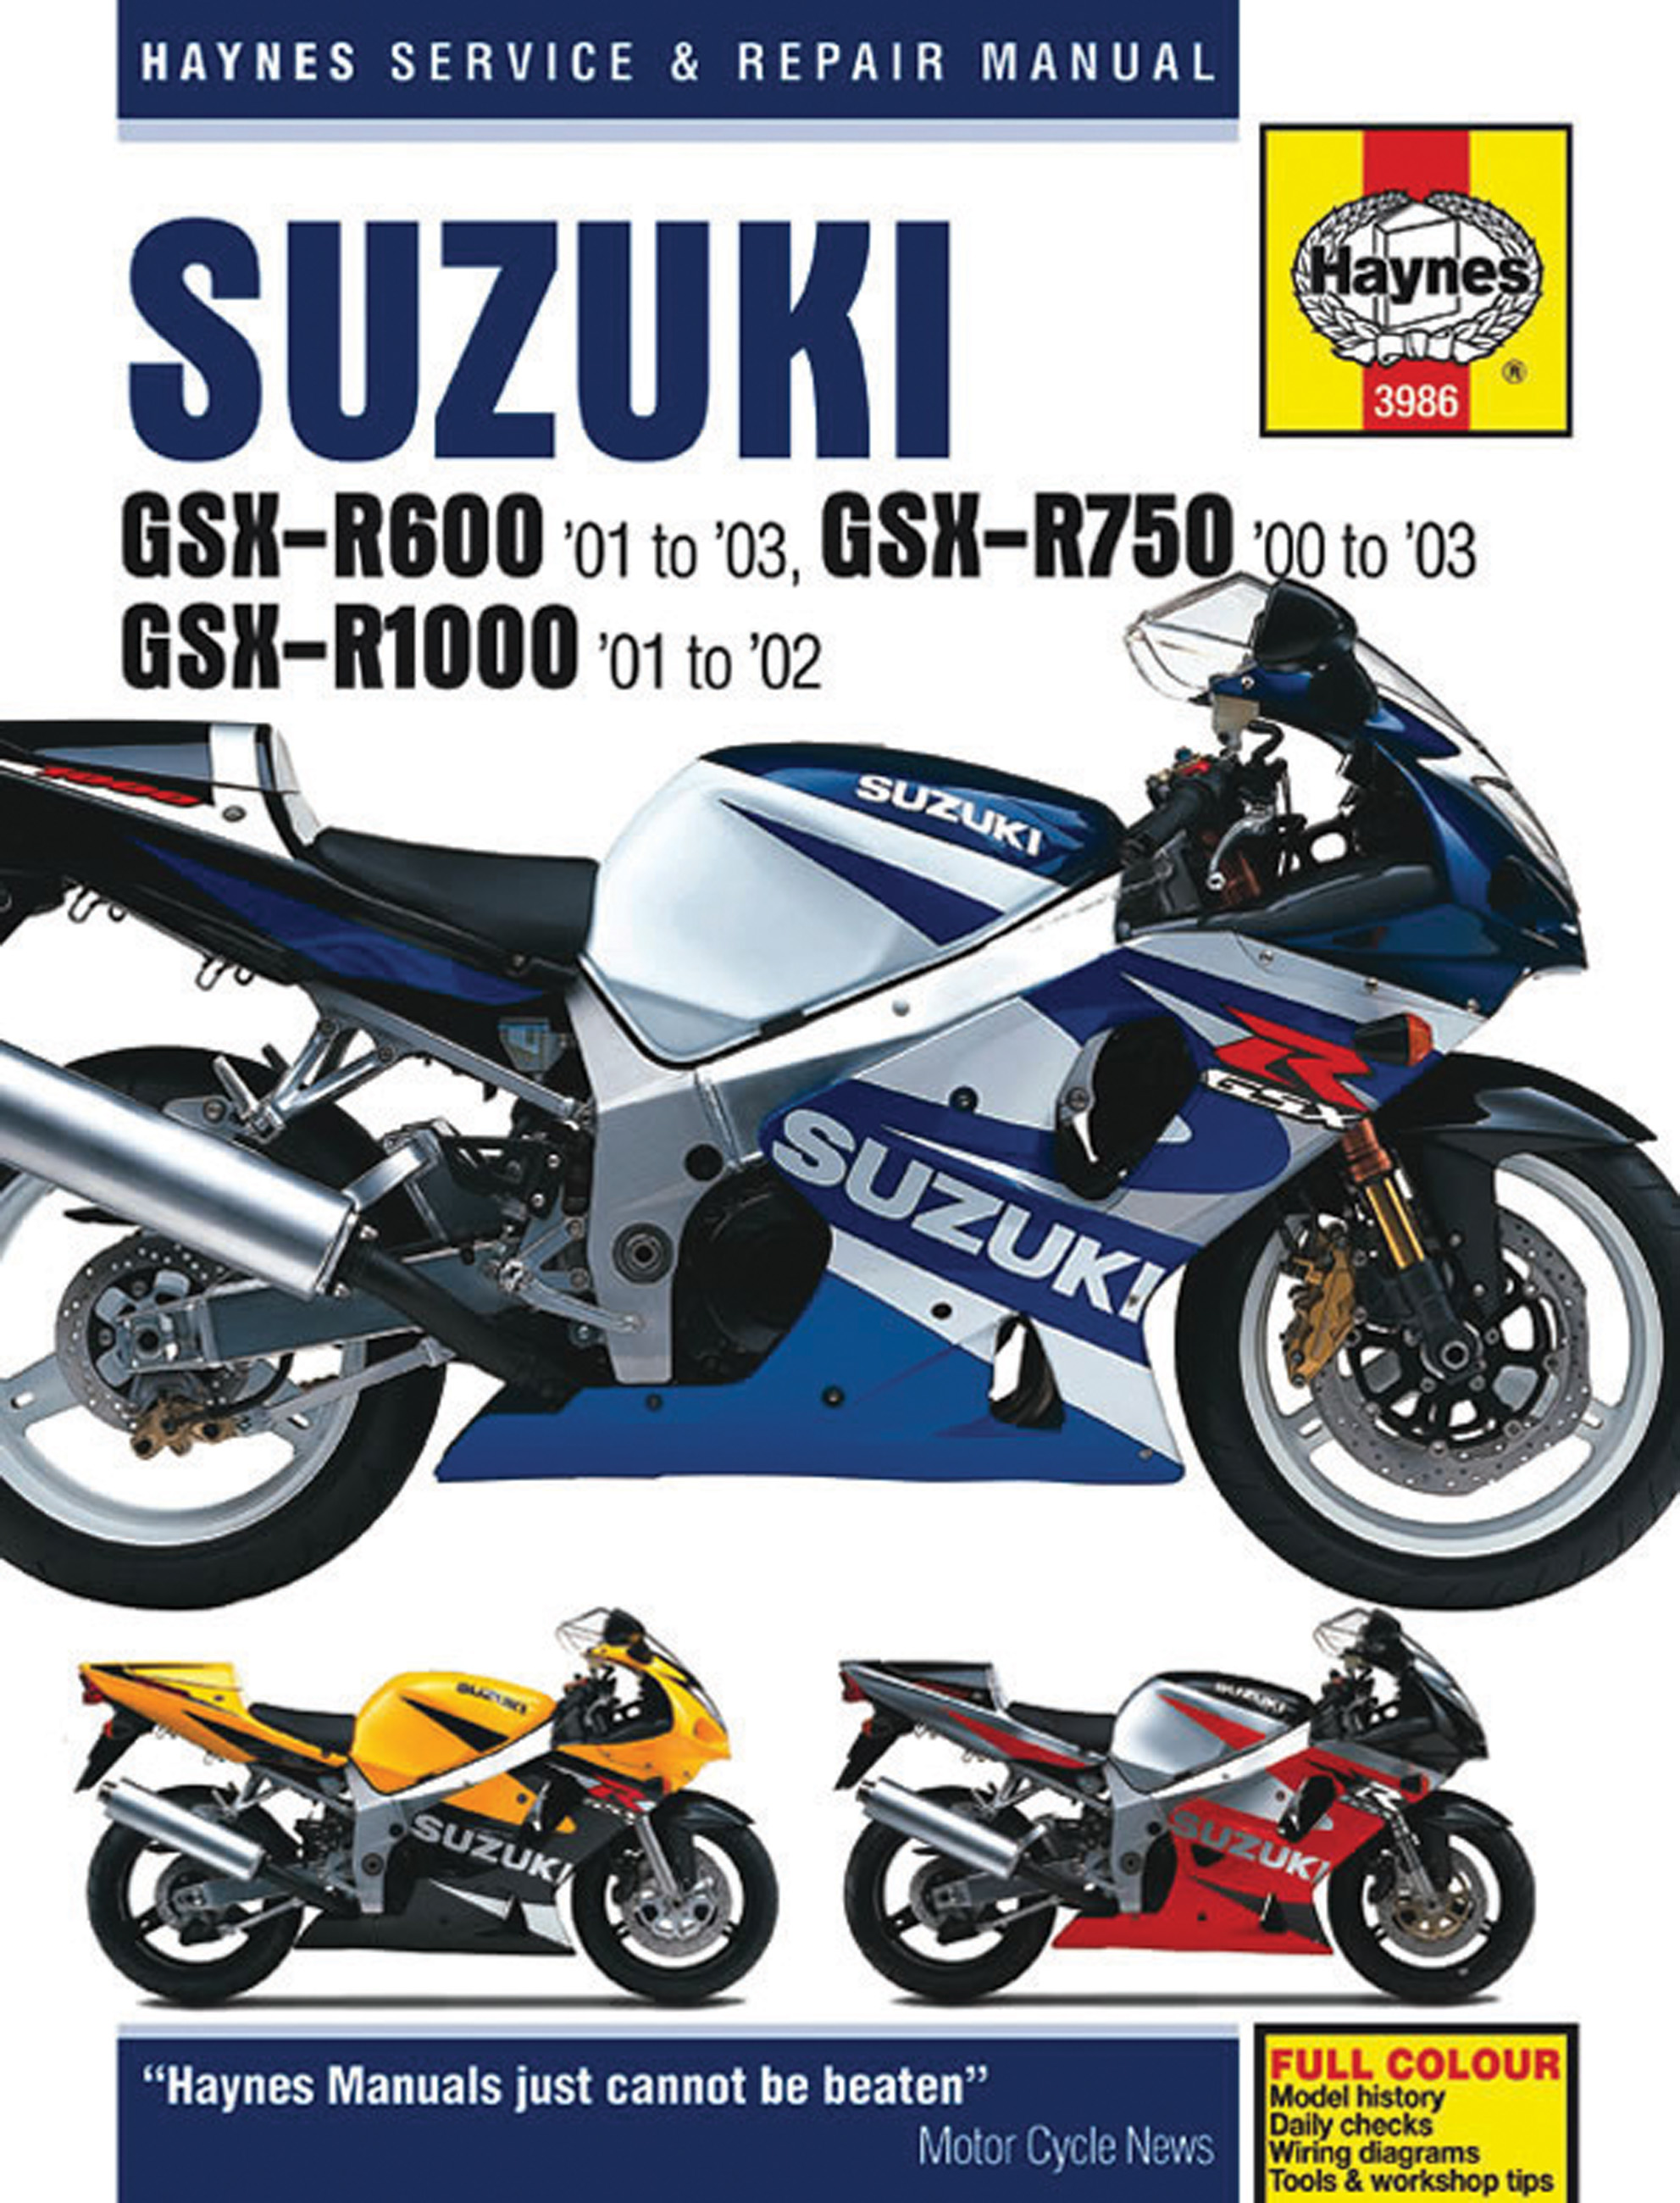 Sentinel Suzuki GSX-R600 GSX-R750 & GSX-R1000 REPAIR SERVICE WORKSHOP MANUAL  HAYNES